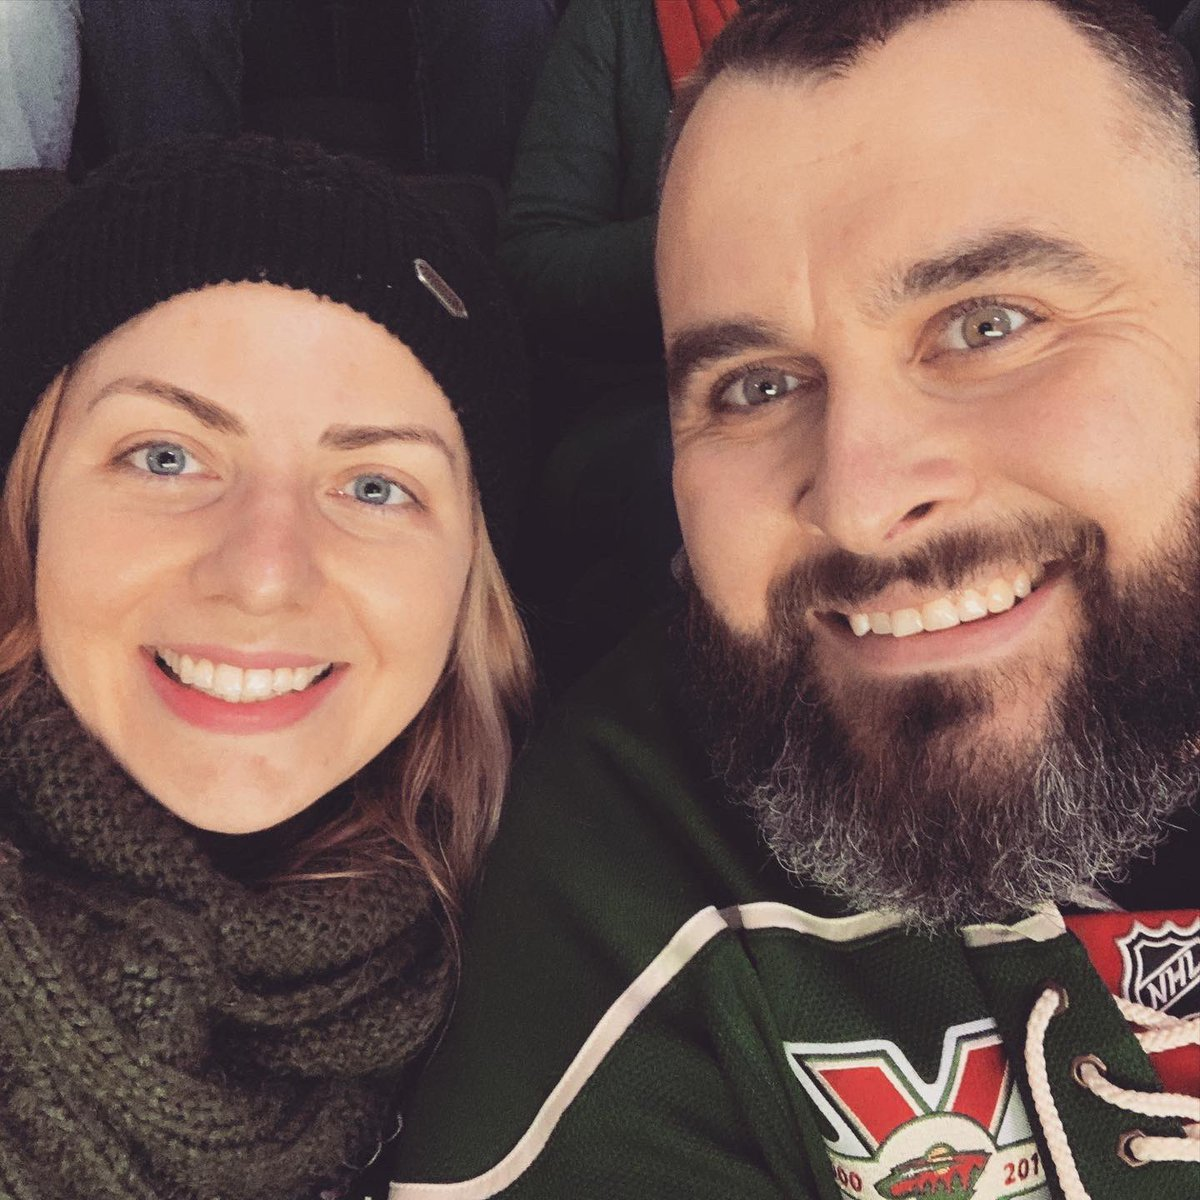 Made it up to a @mnwild game!